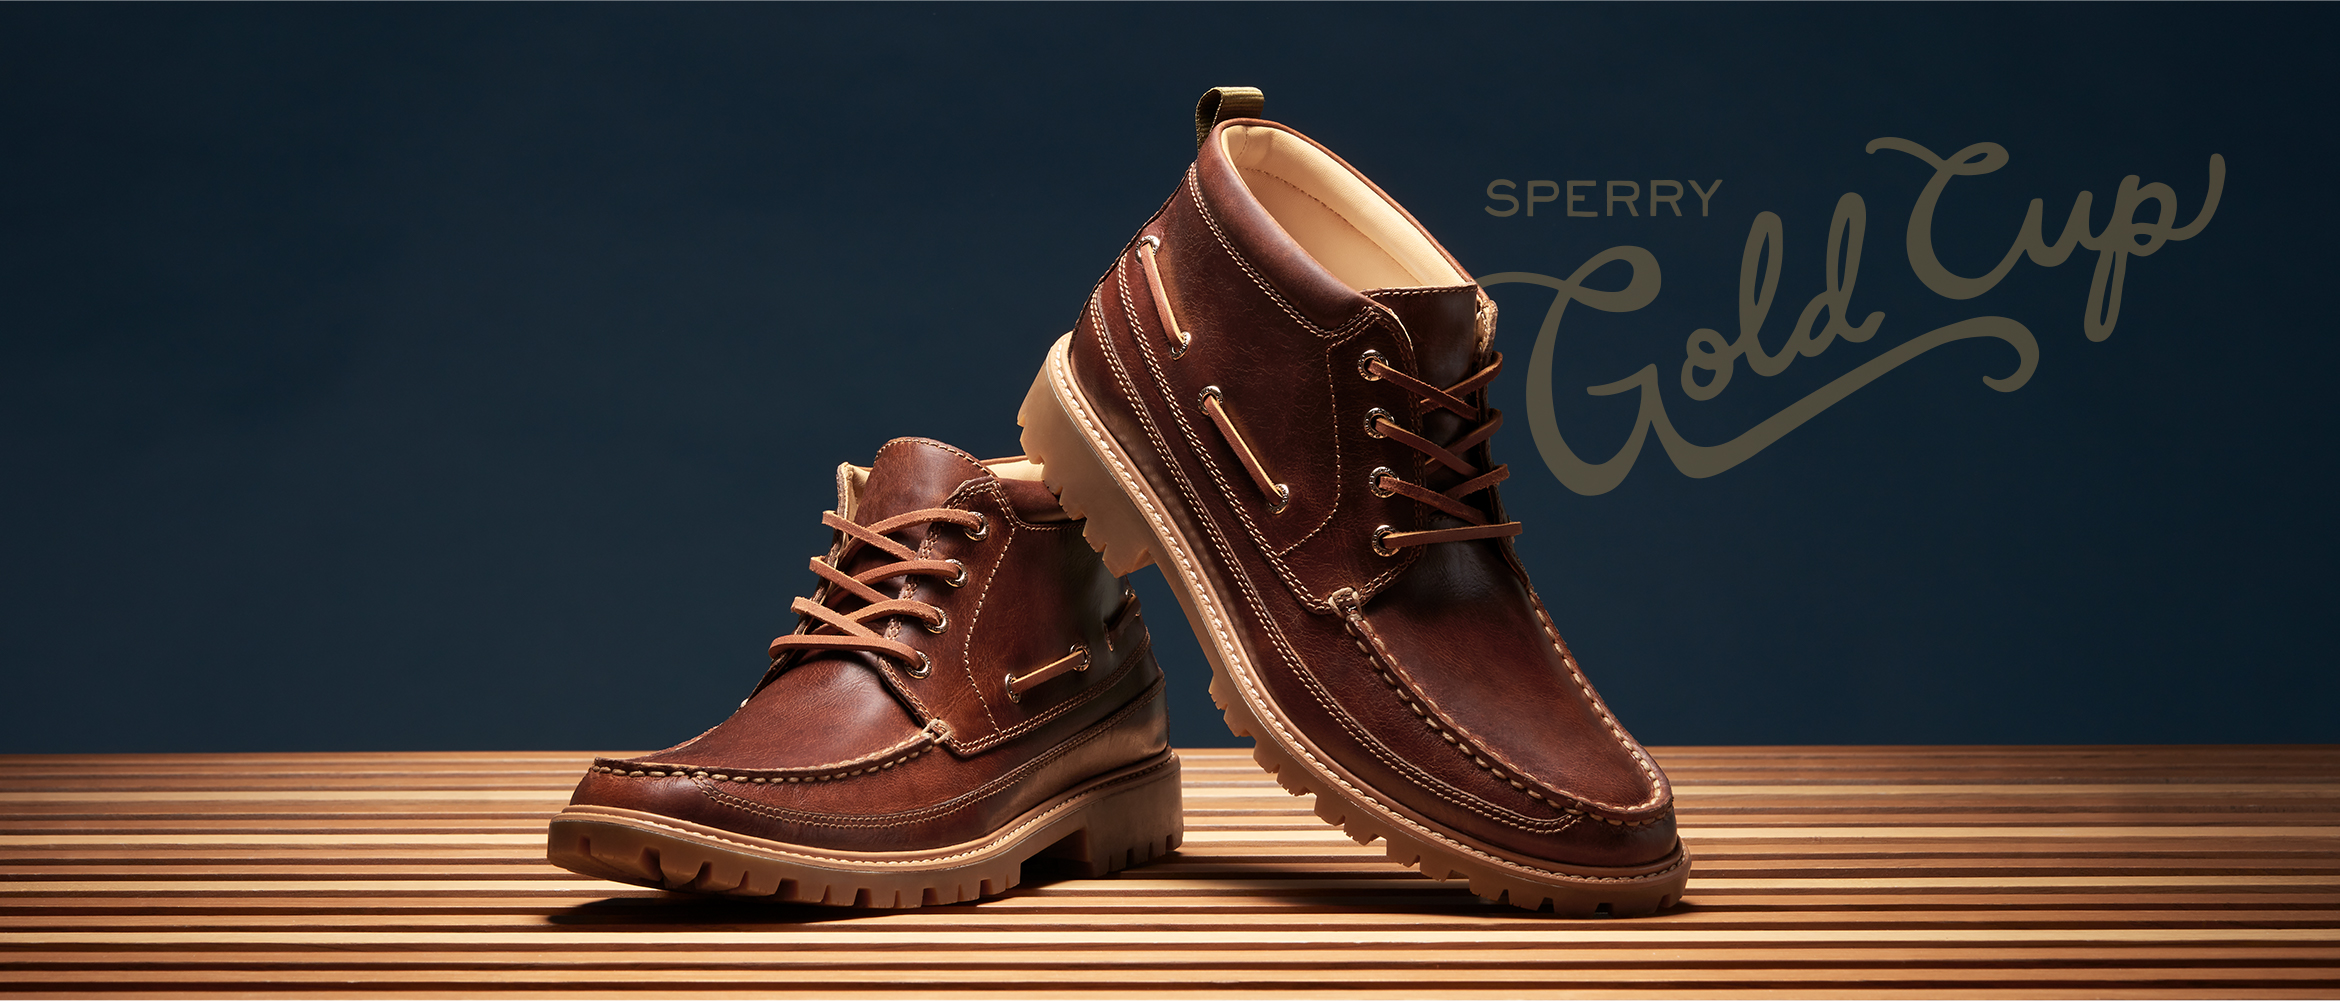 Sperry Gold Cup shoes.